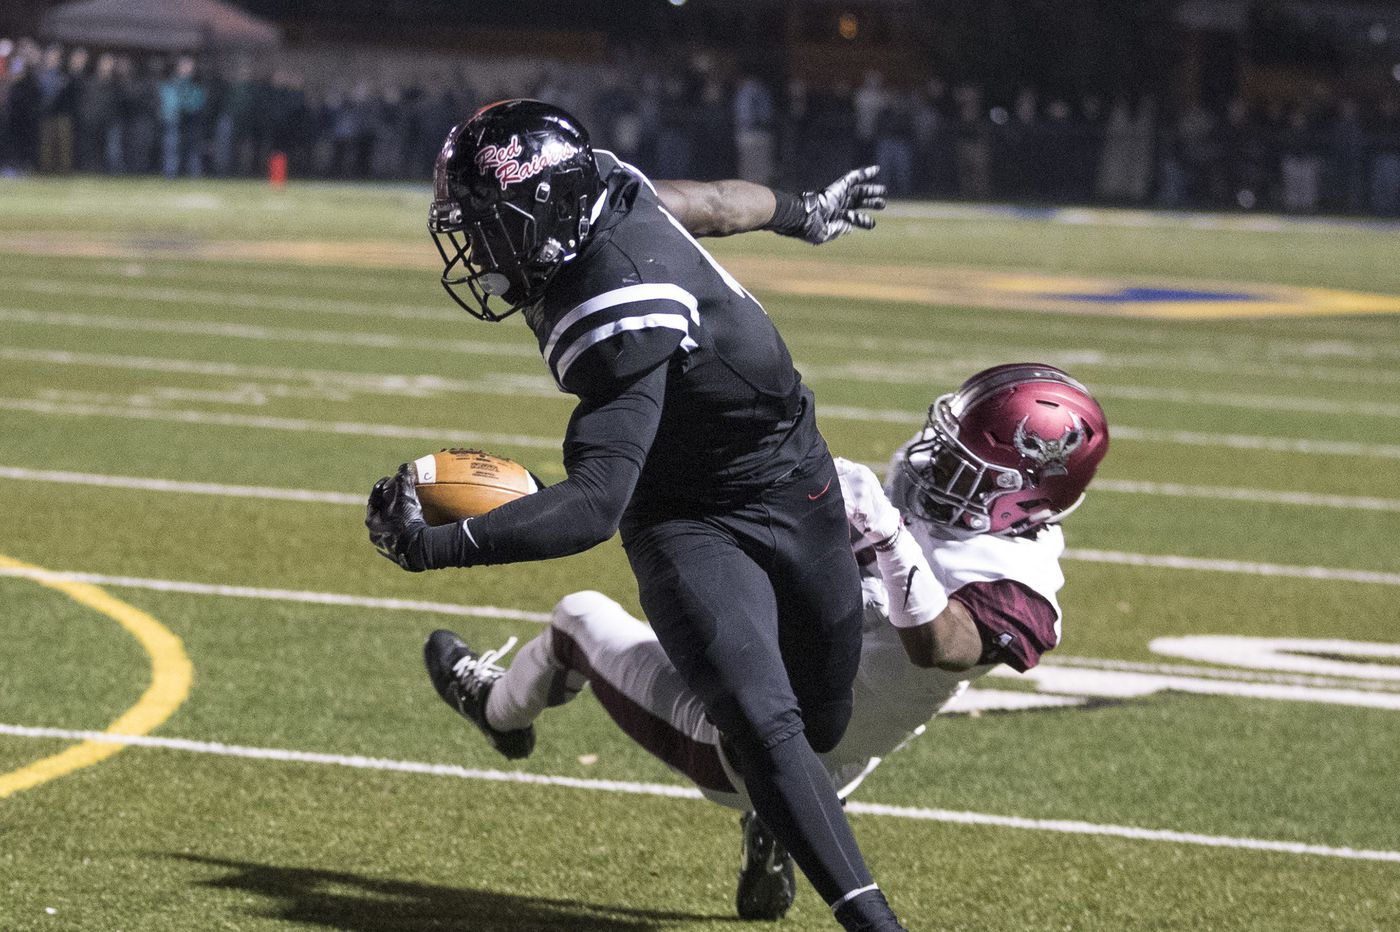 Pa. high school football preview: St. Joe's Prep and Coatesville could square off for state championship